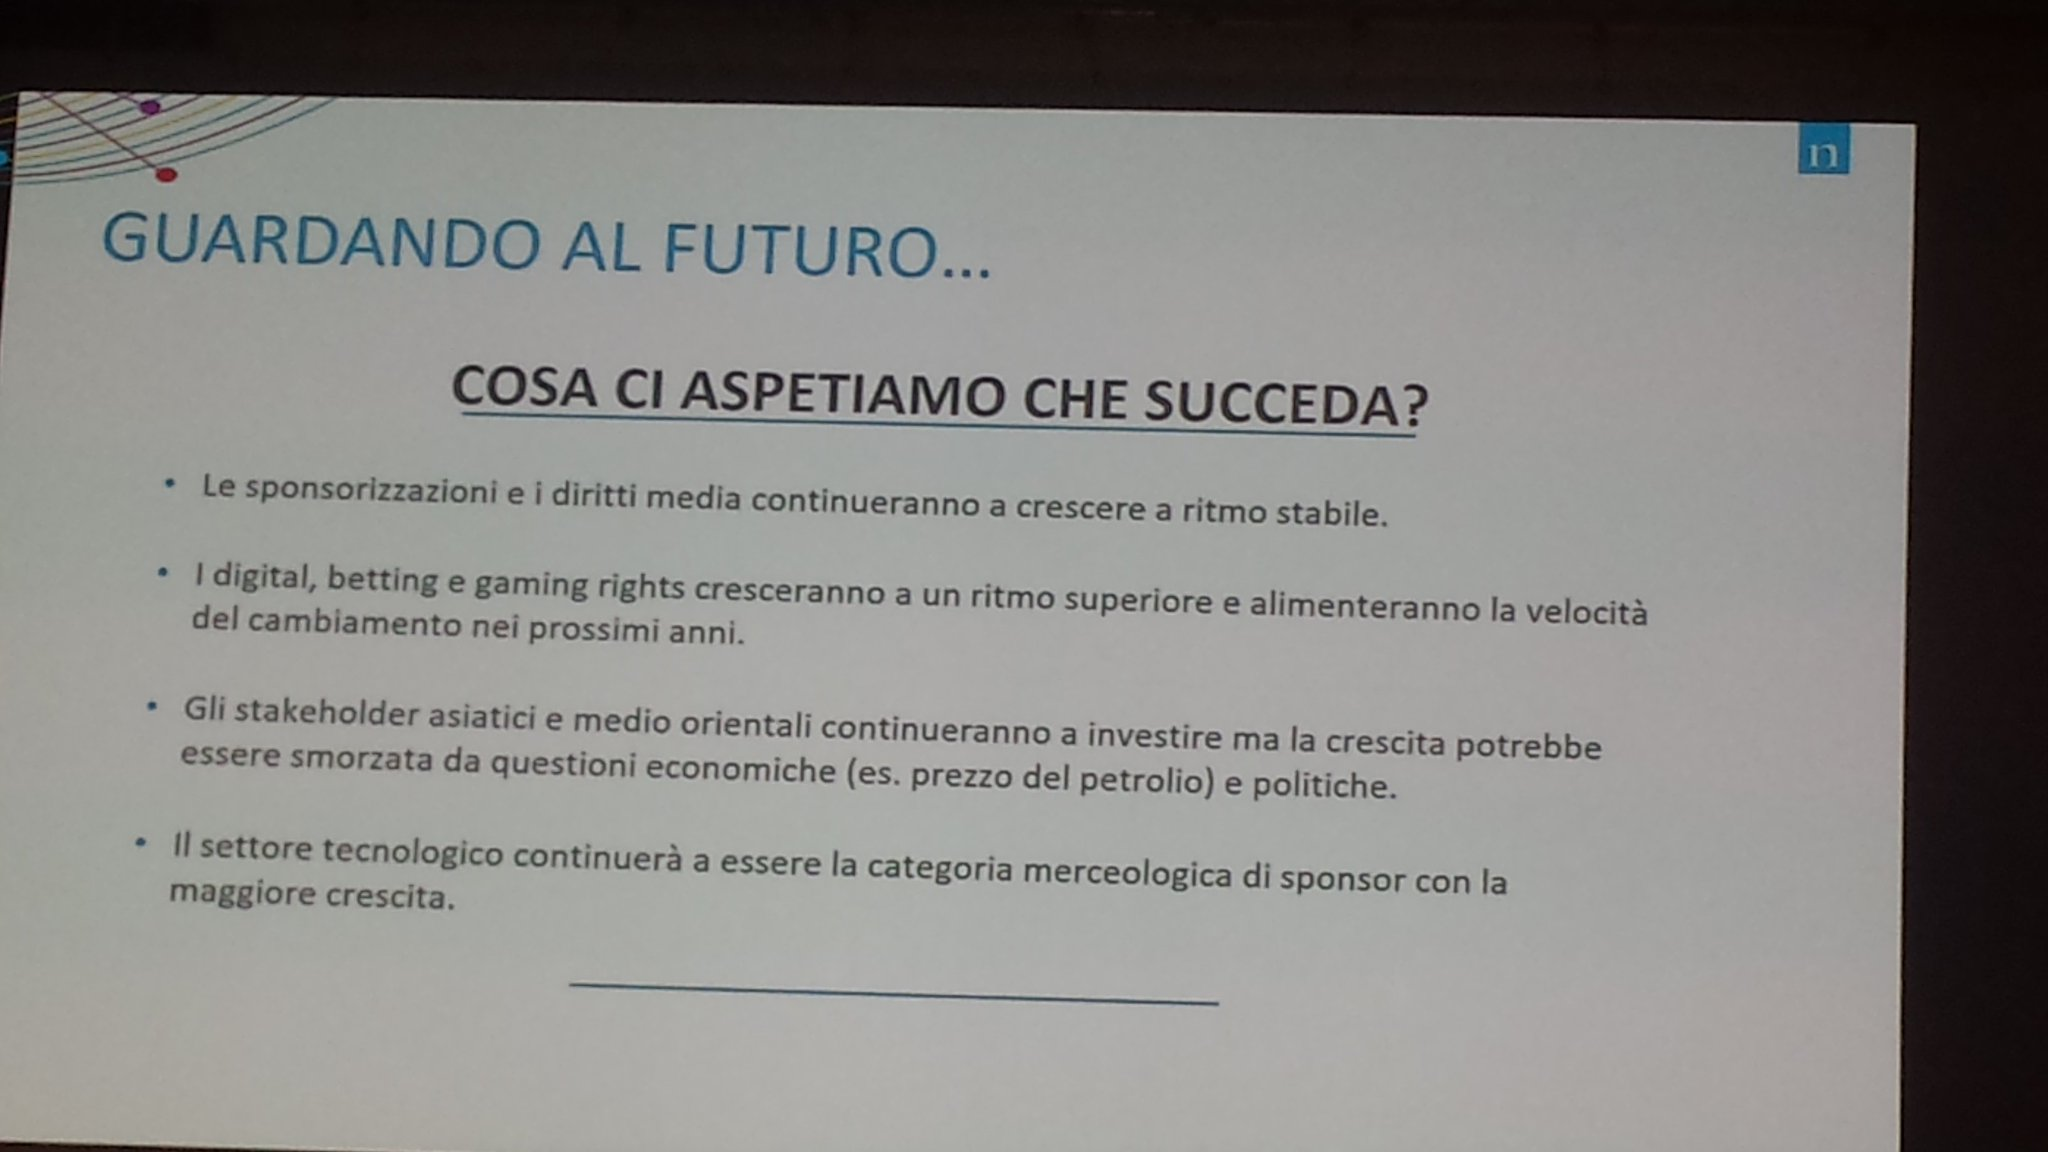 Crescita del business sportivo trainata da #sponsorizzazioni, diritti media, digital, #betting e #gaming rights #forumsport #sportsbiz https://t.co/Tf1Vd1QJdi